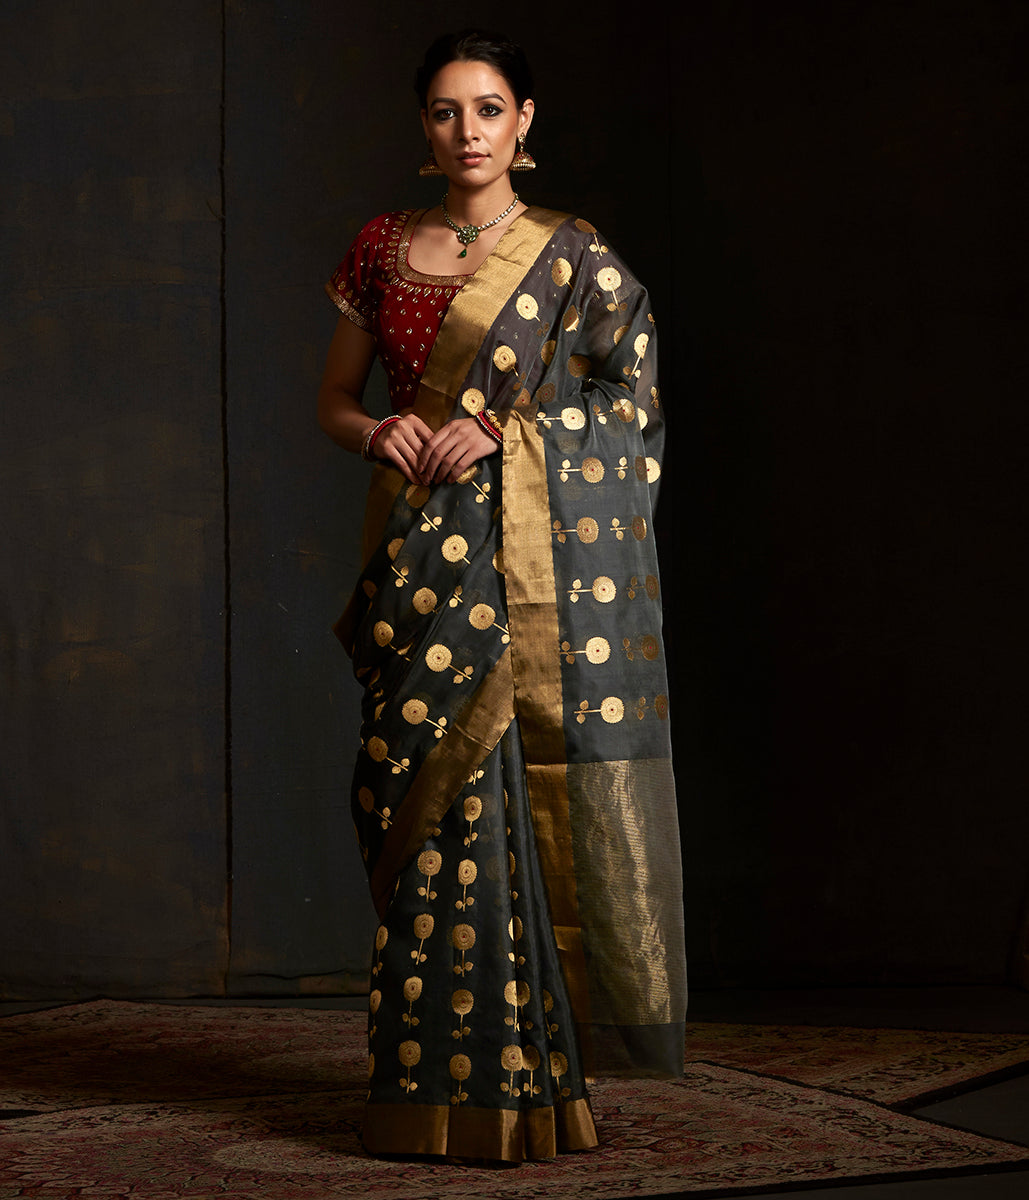 Charcoal grey chanderi silk saree with floral motifs woven in gold and silver zari